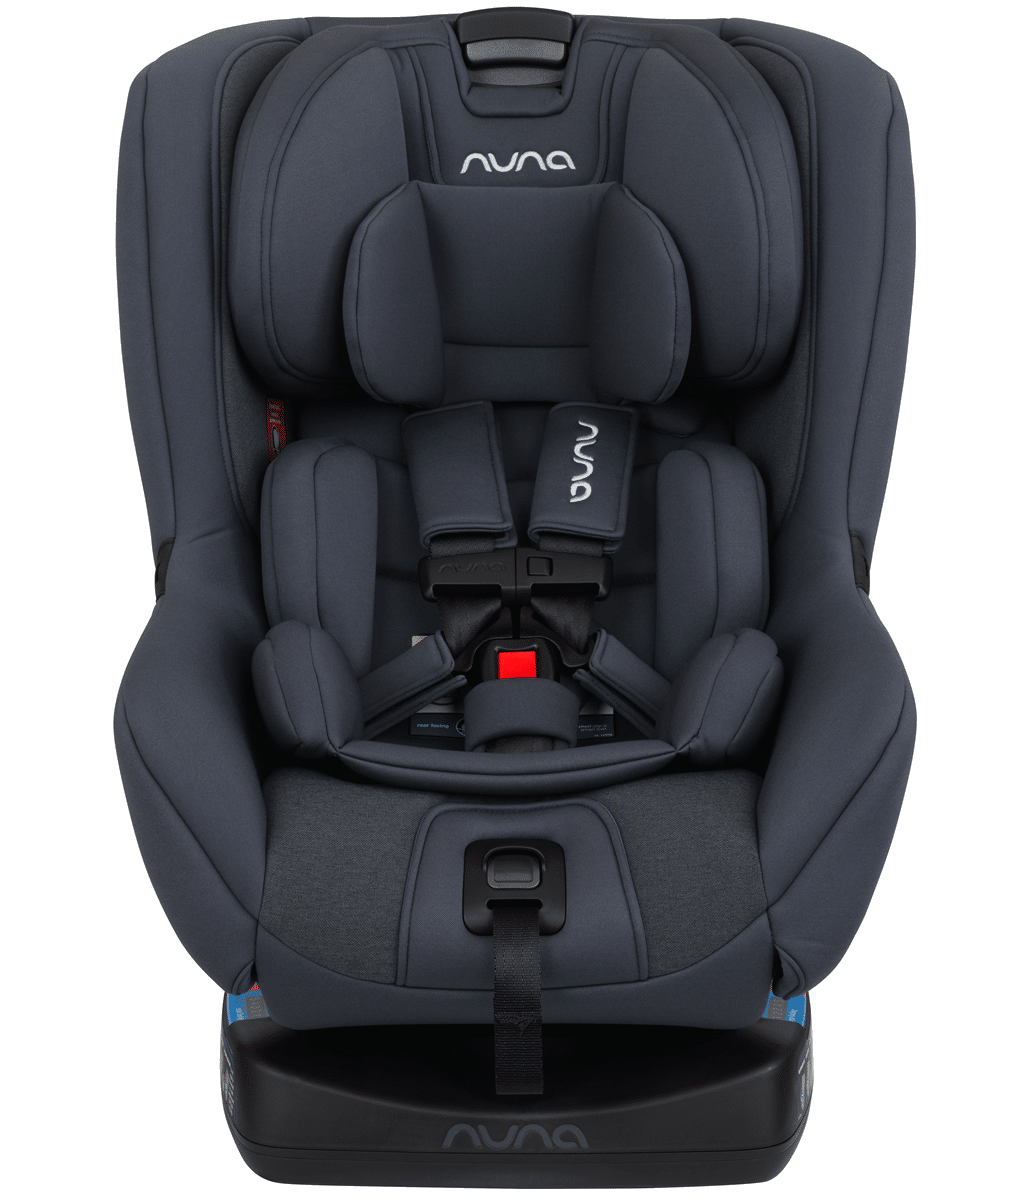 Types Of Car Seats Infant Car Seat Vs Convertible Car Seat Vs All In One Vs Booster Safe Convertible Car Seats